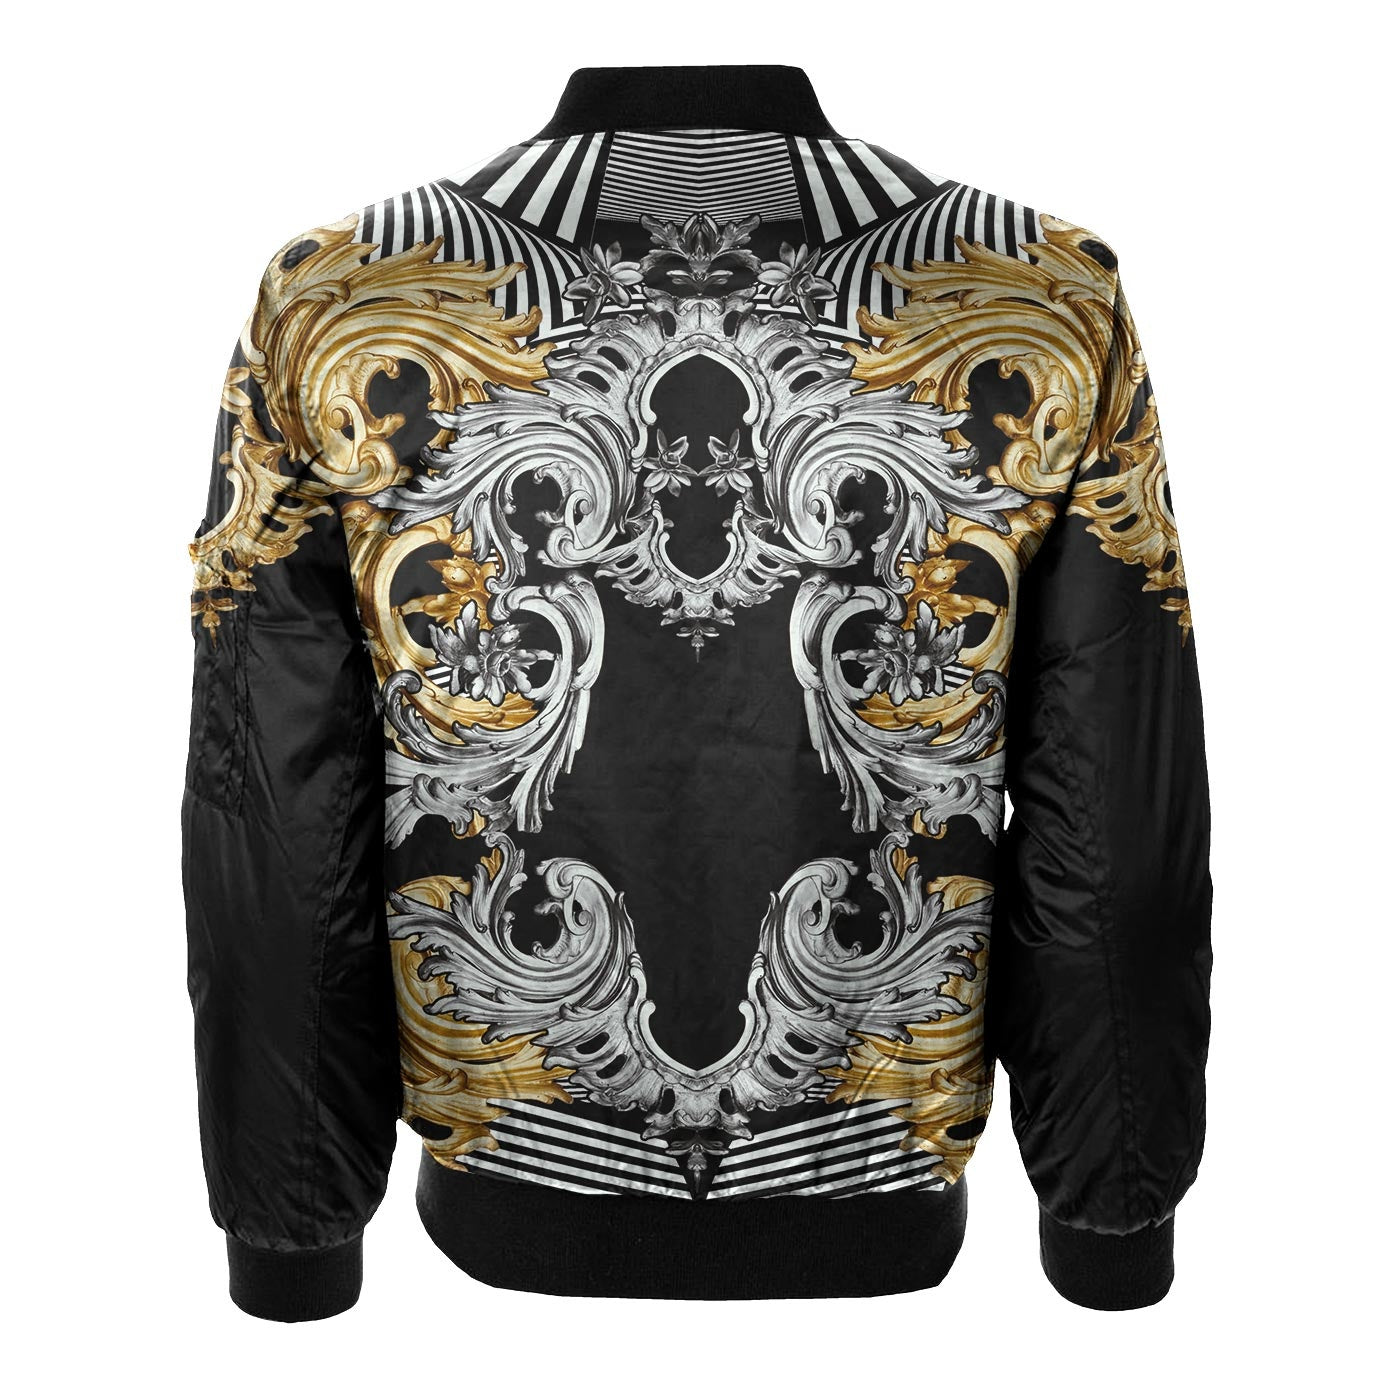 Platinum Gold Bomber Jacket